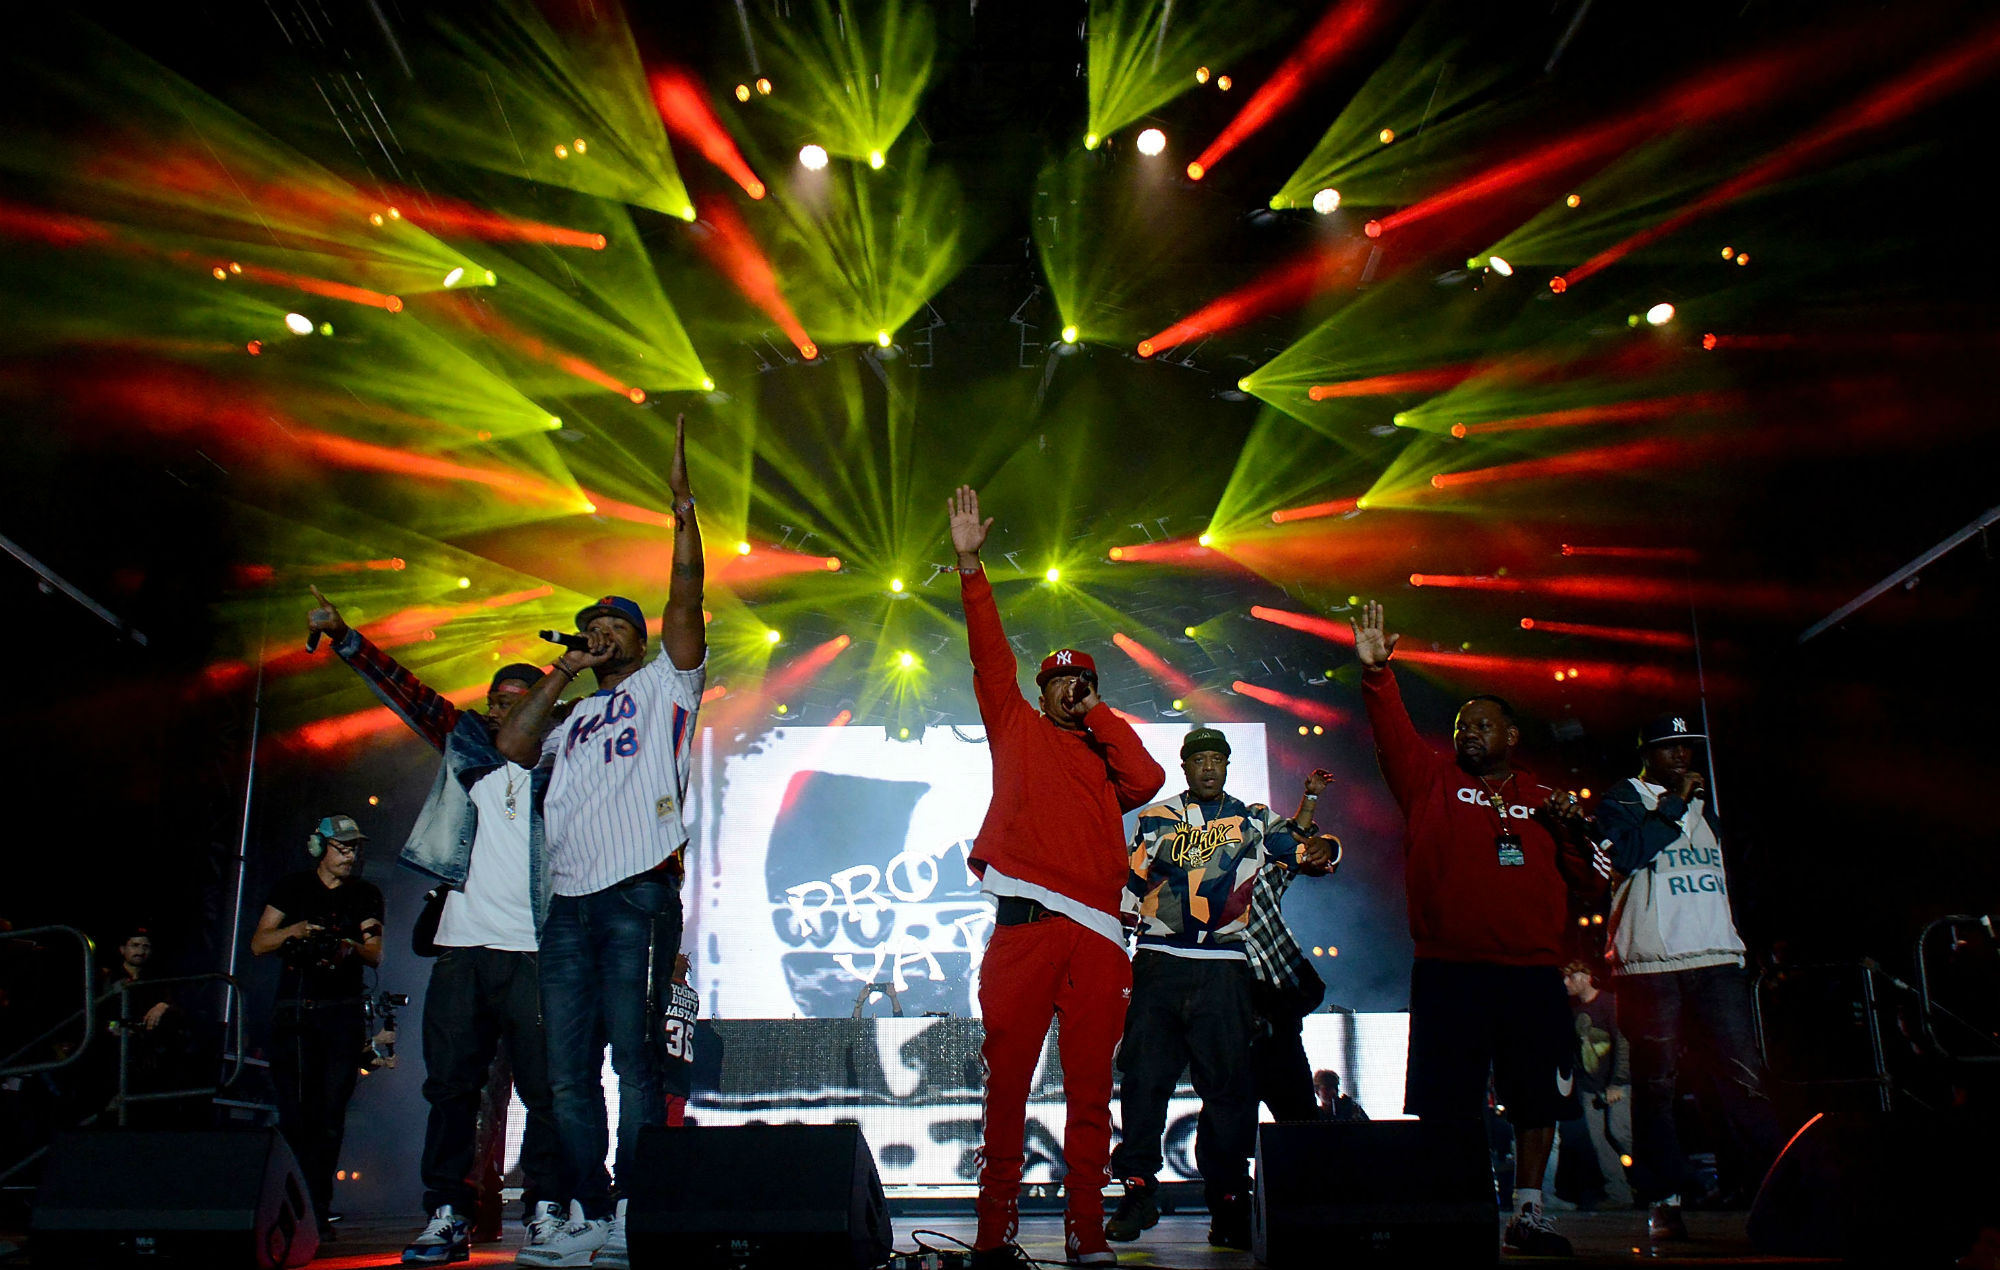 A Wu-Tang Clan theme park is being planned